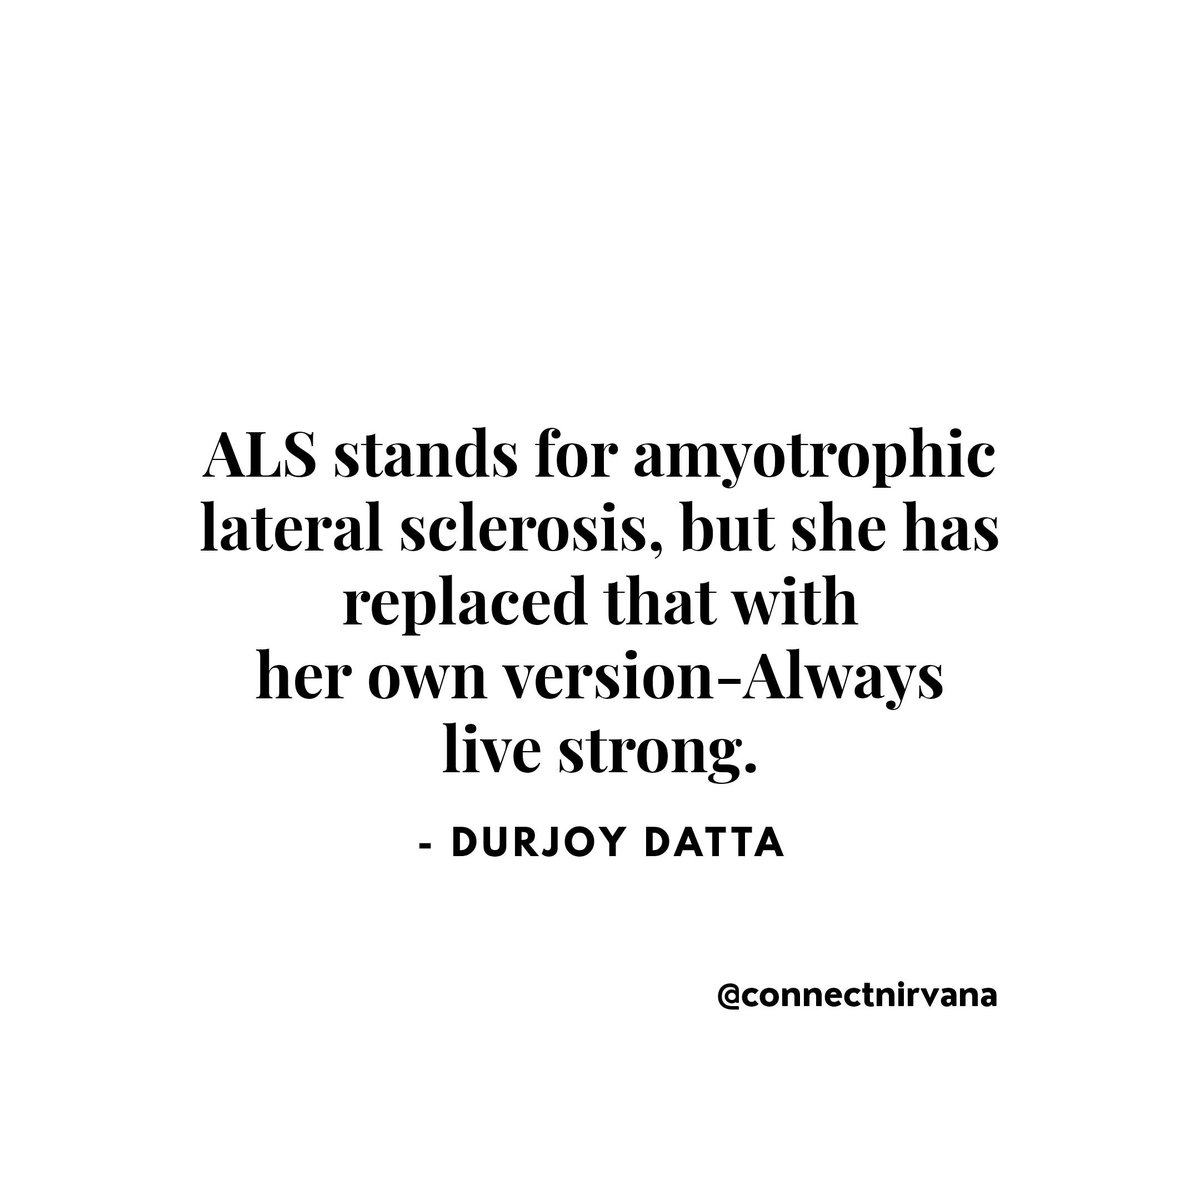 ALS. Double tap ❤️ if you agree THIS.  Follow for #dailyquotes   #Always #live #lovequotes #quotes #she #quoteoftheday #quote #quotestoliveby #quotesdaily #quotesaboutlife #daily #inspire #Inspiration #newpost #text #Tweet #follow #love #RETWEEET #RetweeetPlease https://t.co/3ORJkayZnm